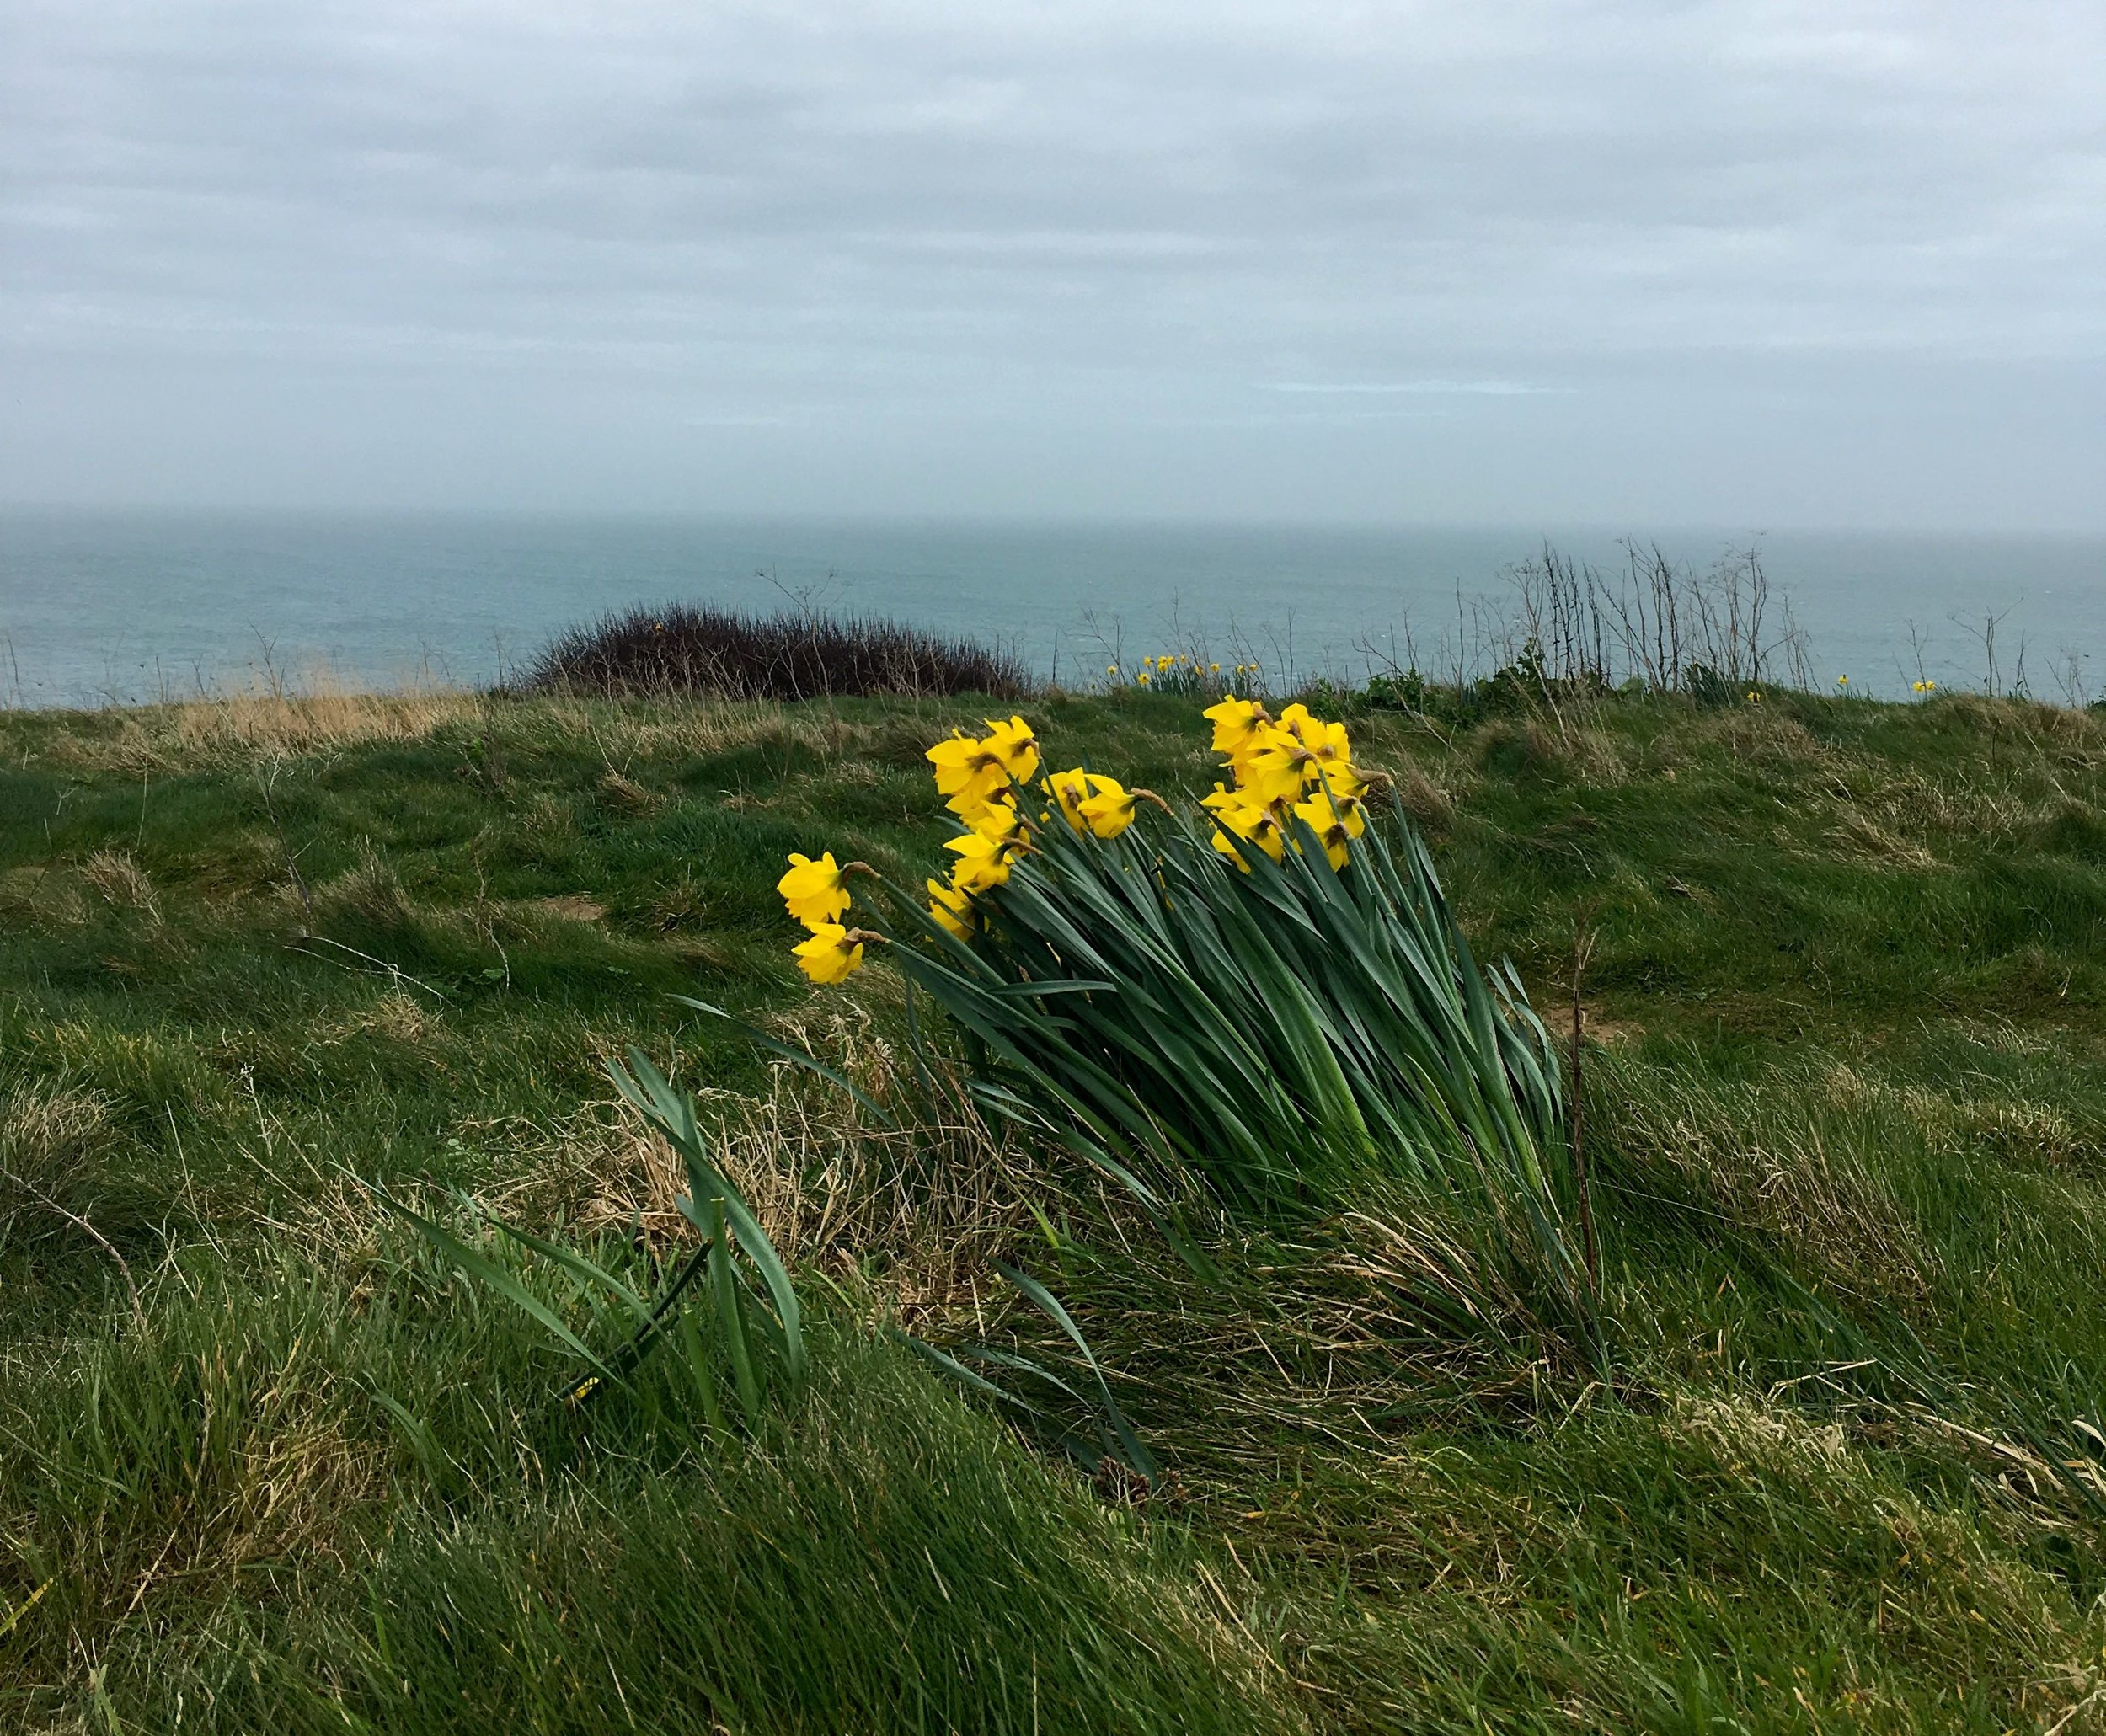 I told you it was windy - just look at those daffodils and how they're coping